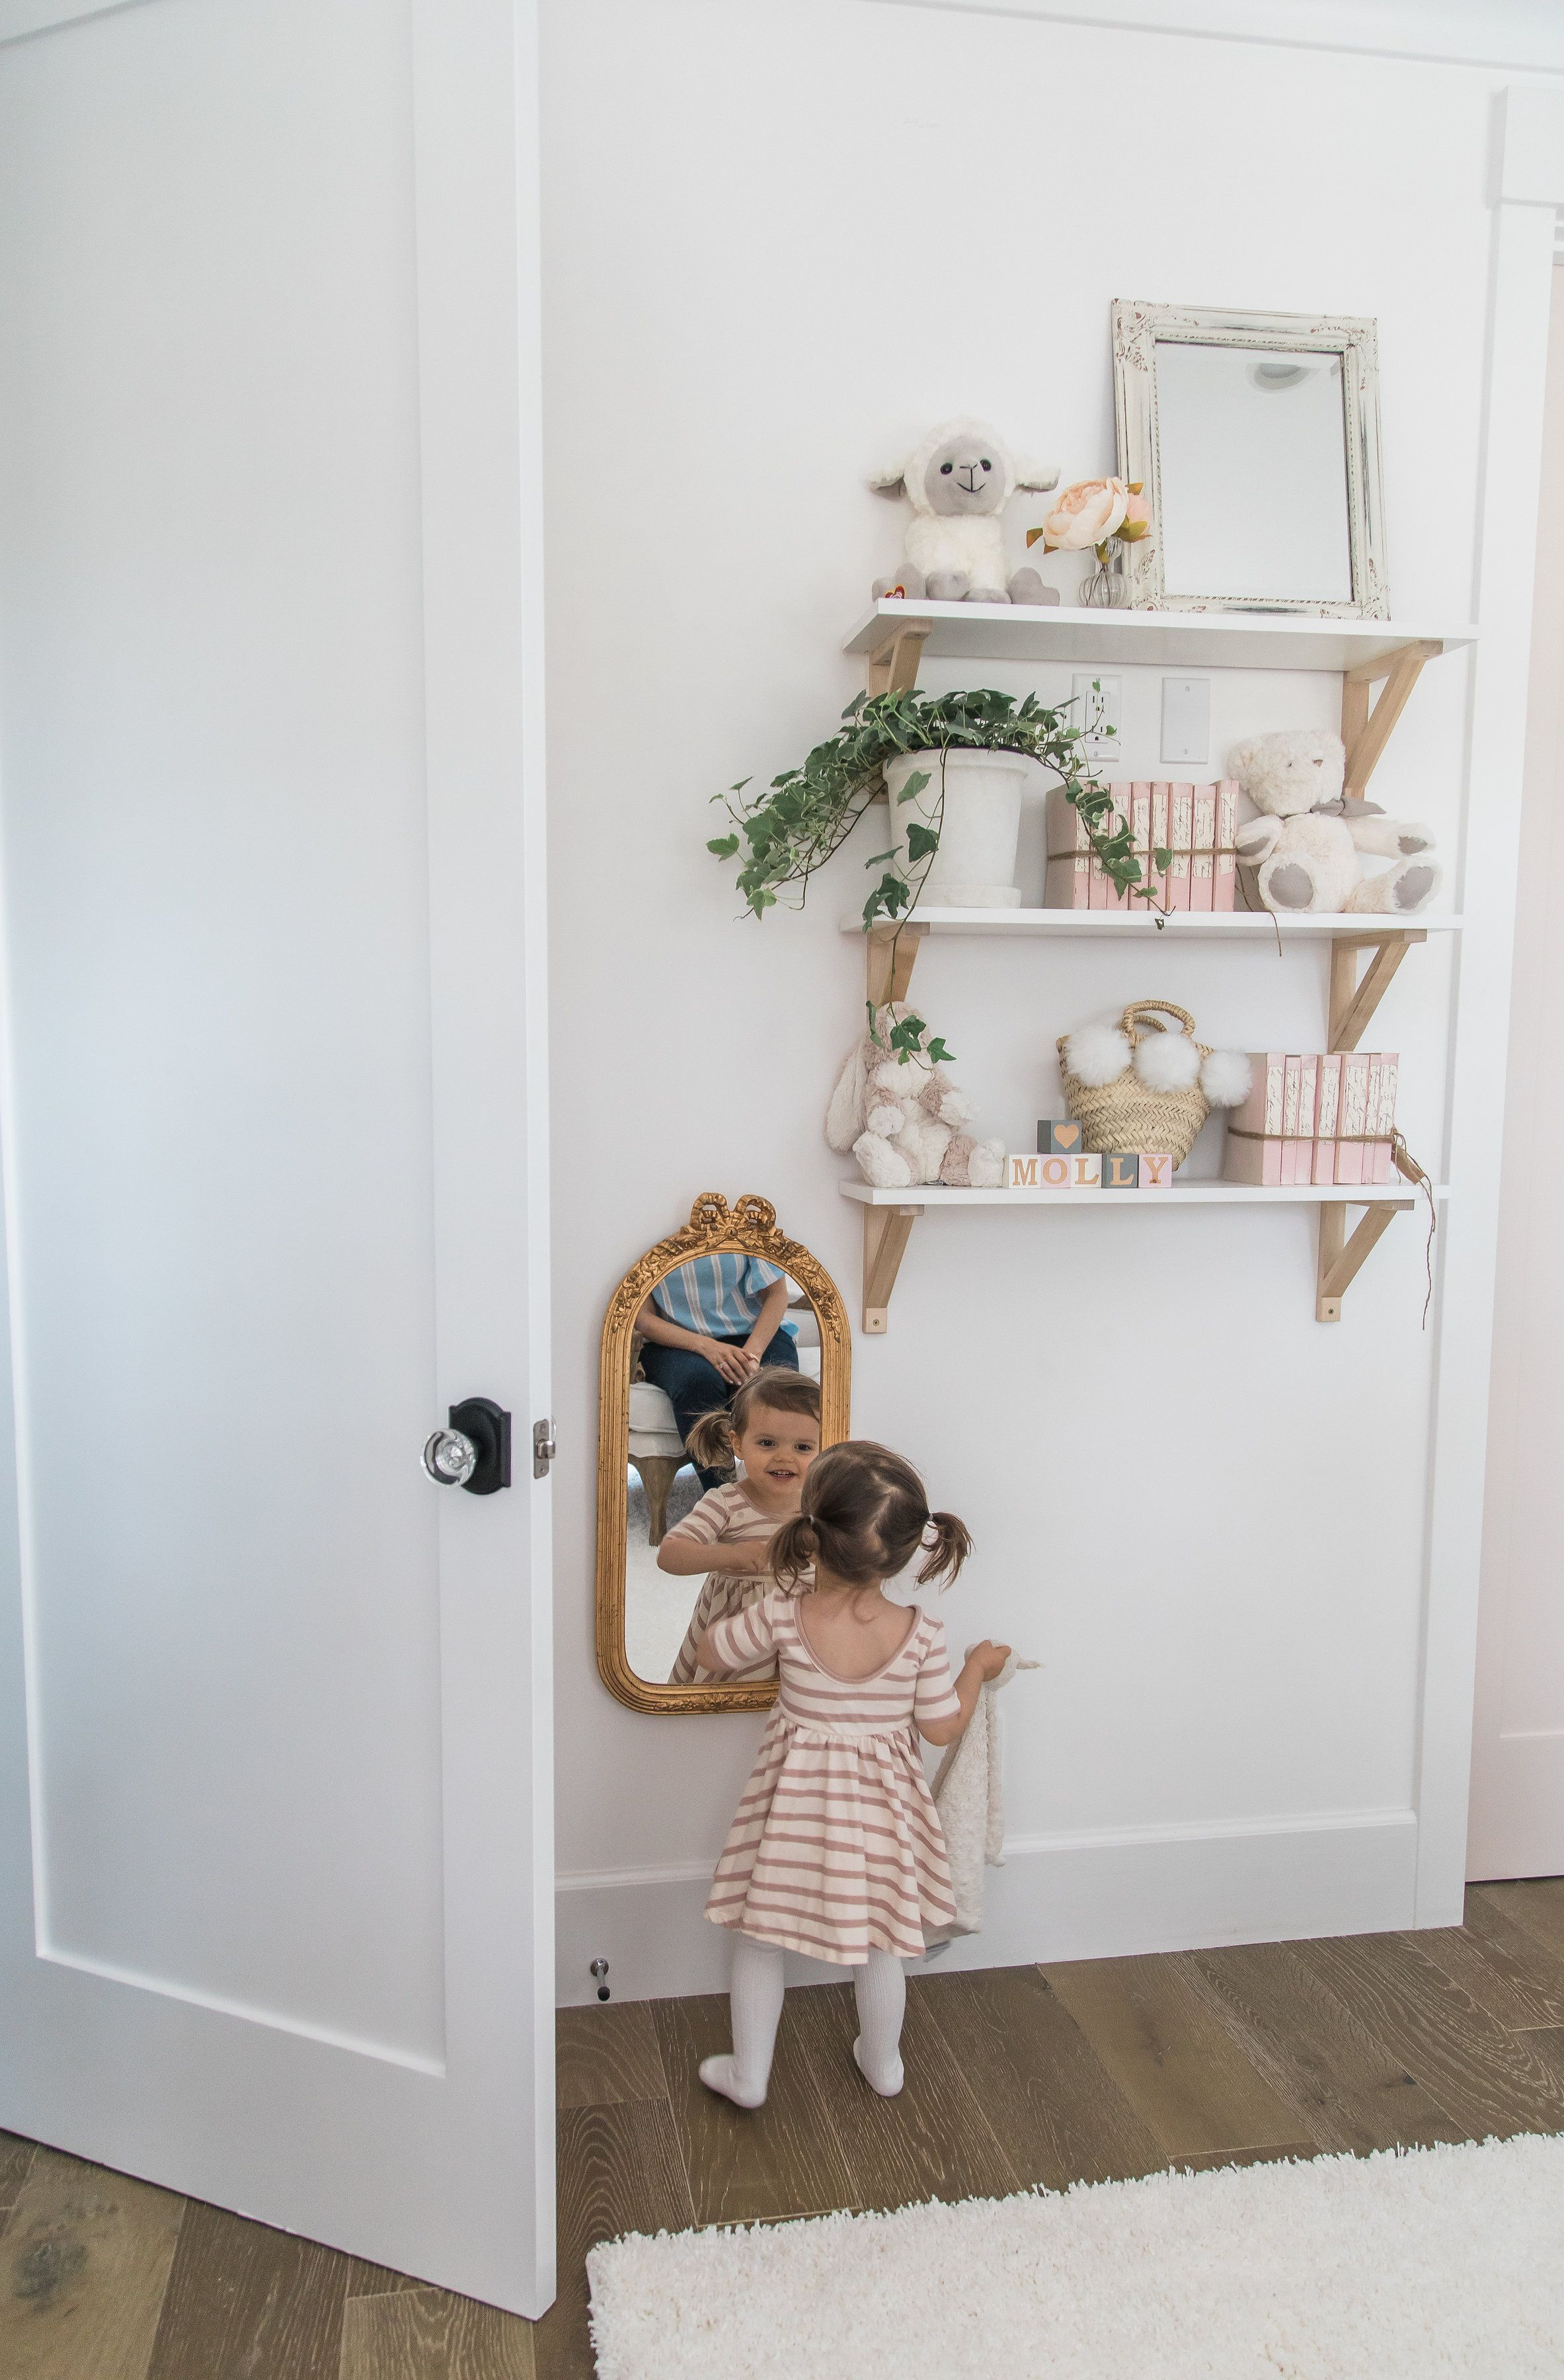 A little Girl's Room Decor Ideas - Blush Paint and Whimsical - Design Inspo